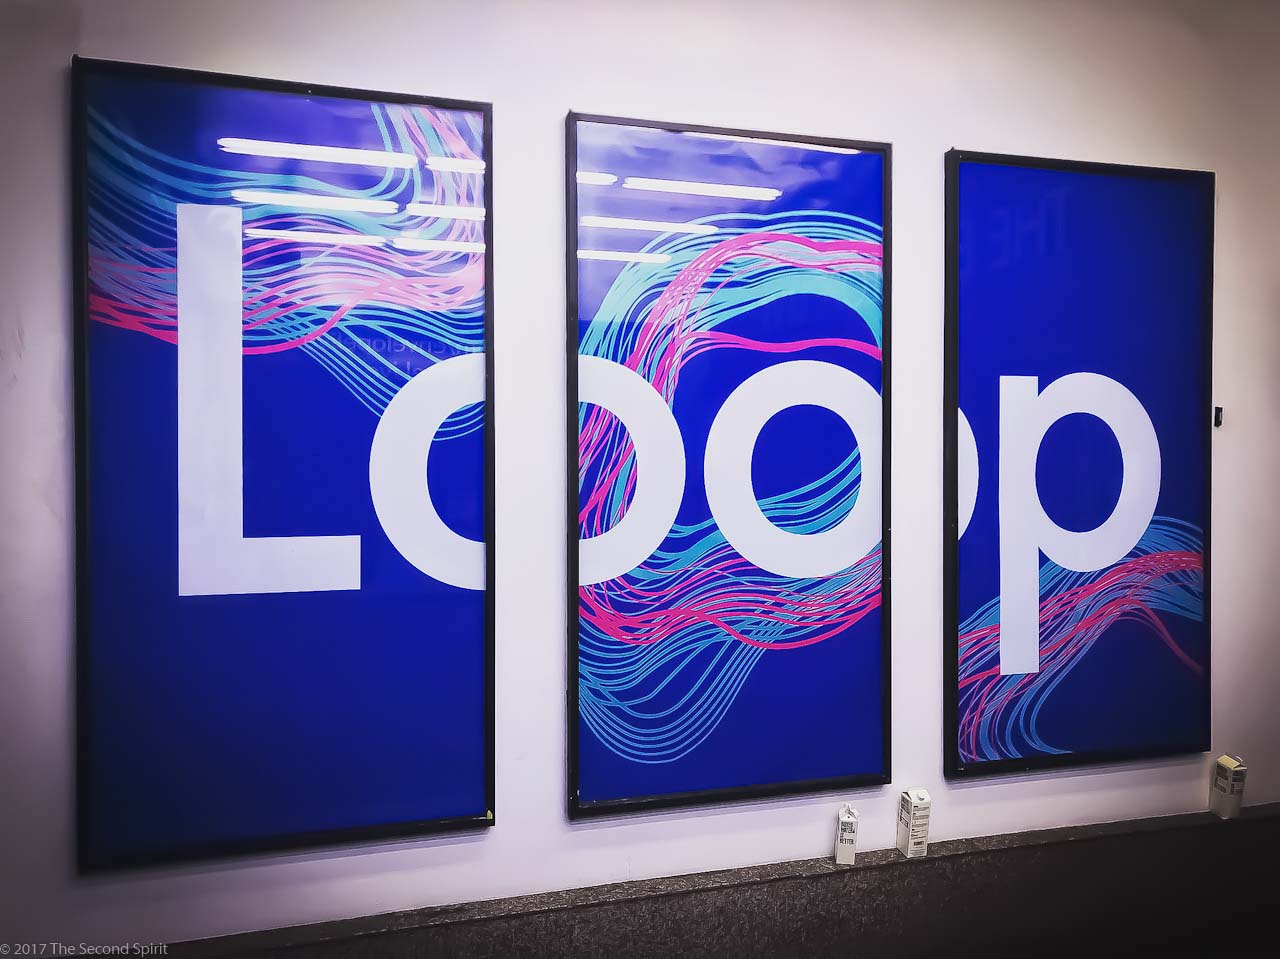 59 Tips Learned at Ableton Loop 2018 Day 1 – Music - Software - Instruments- Montalban Theater Loop Billboard